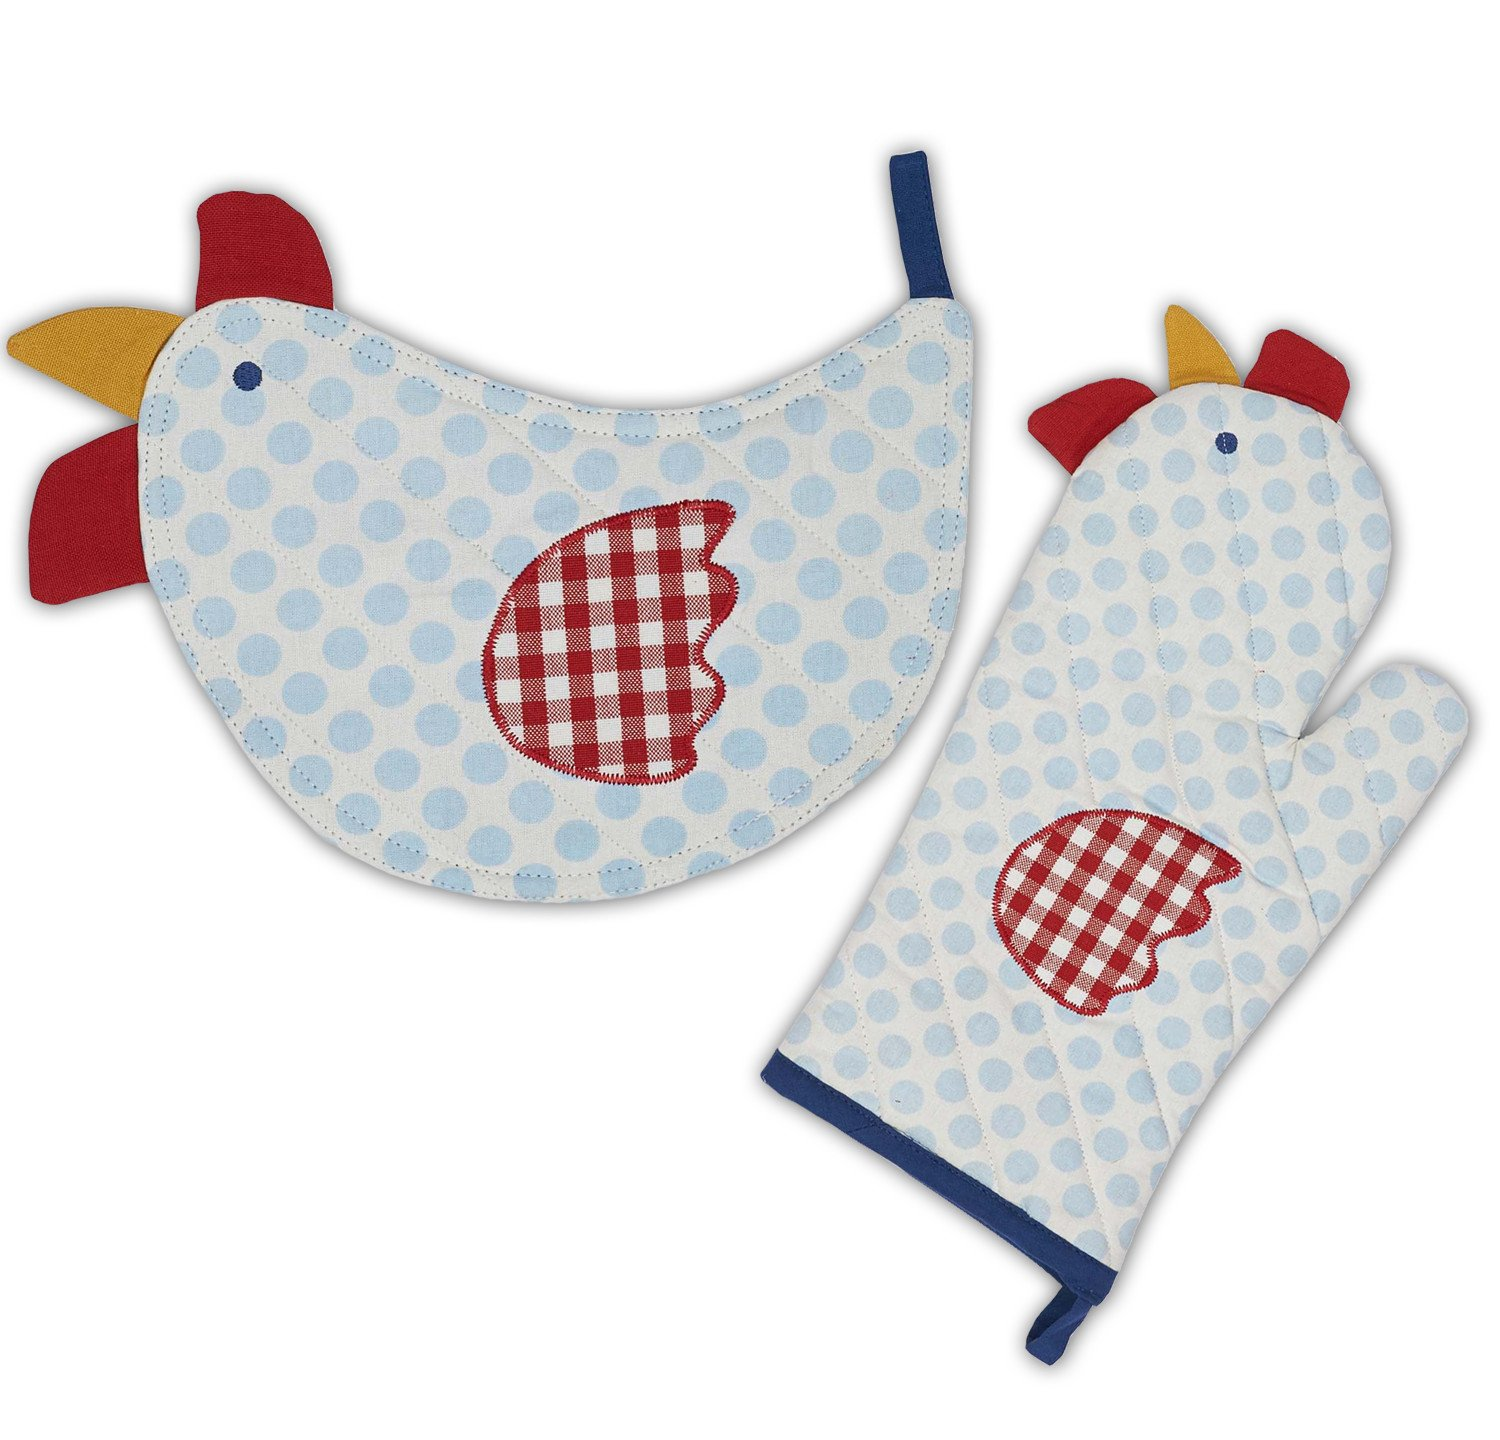 DII 100% Cotton, Machine Washable, Everyday Kitchen Basic, Oven Mitt and Pot Holder Gift Set, Chicken Shape by DII